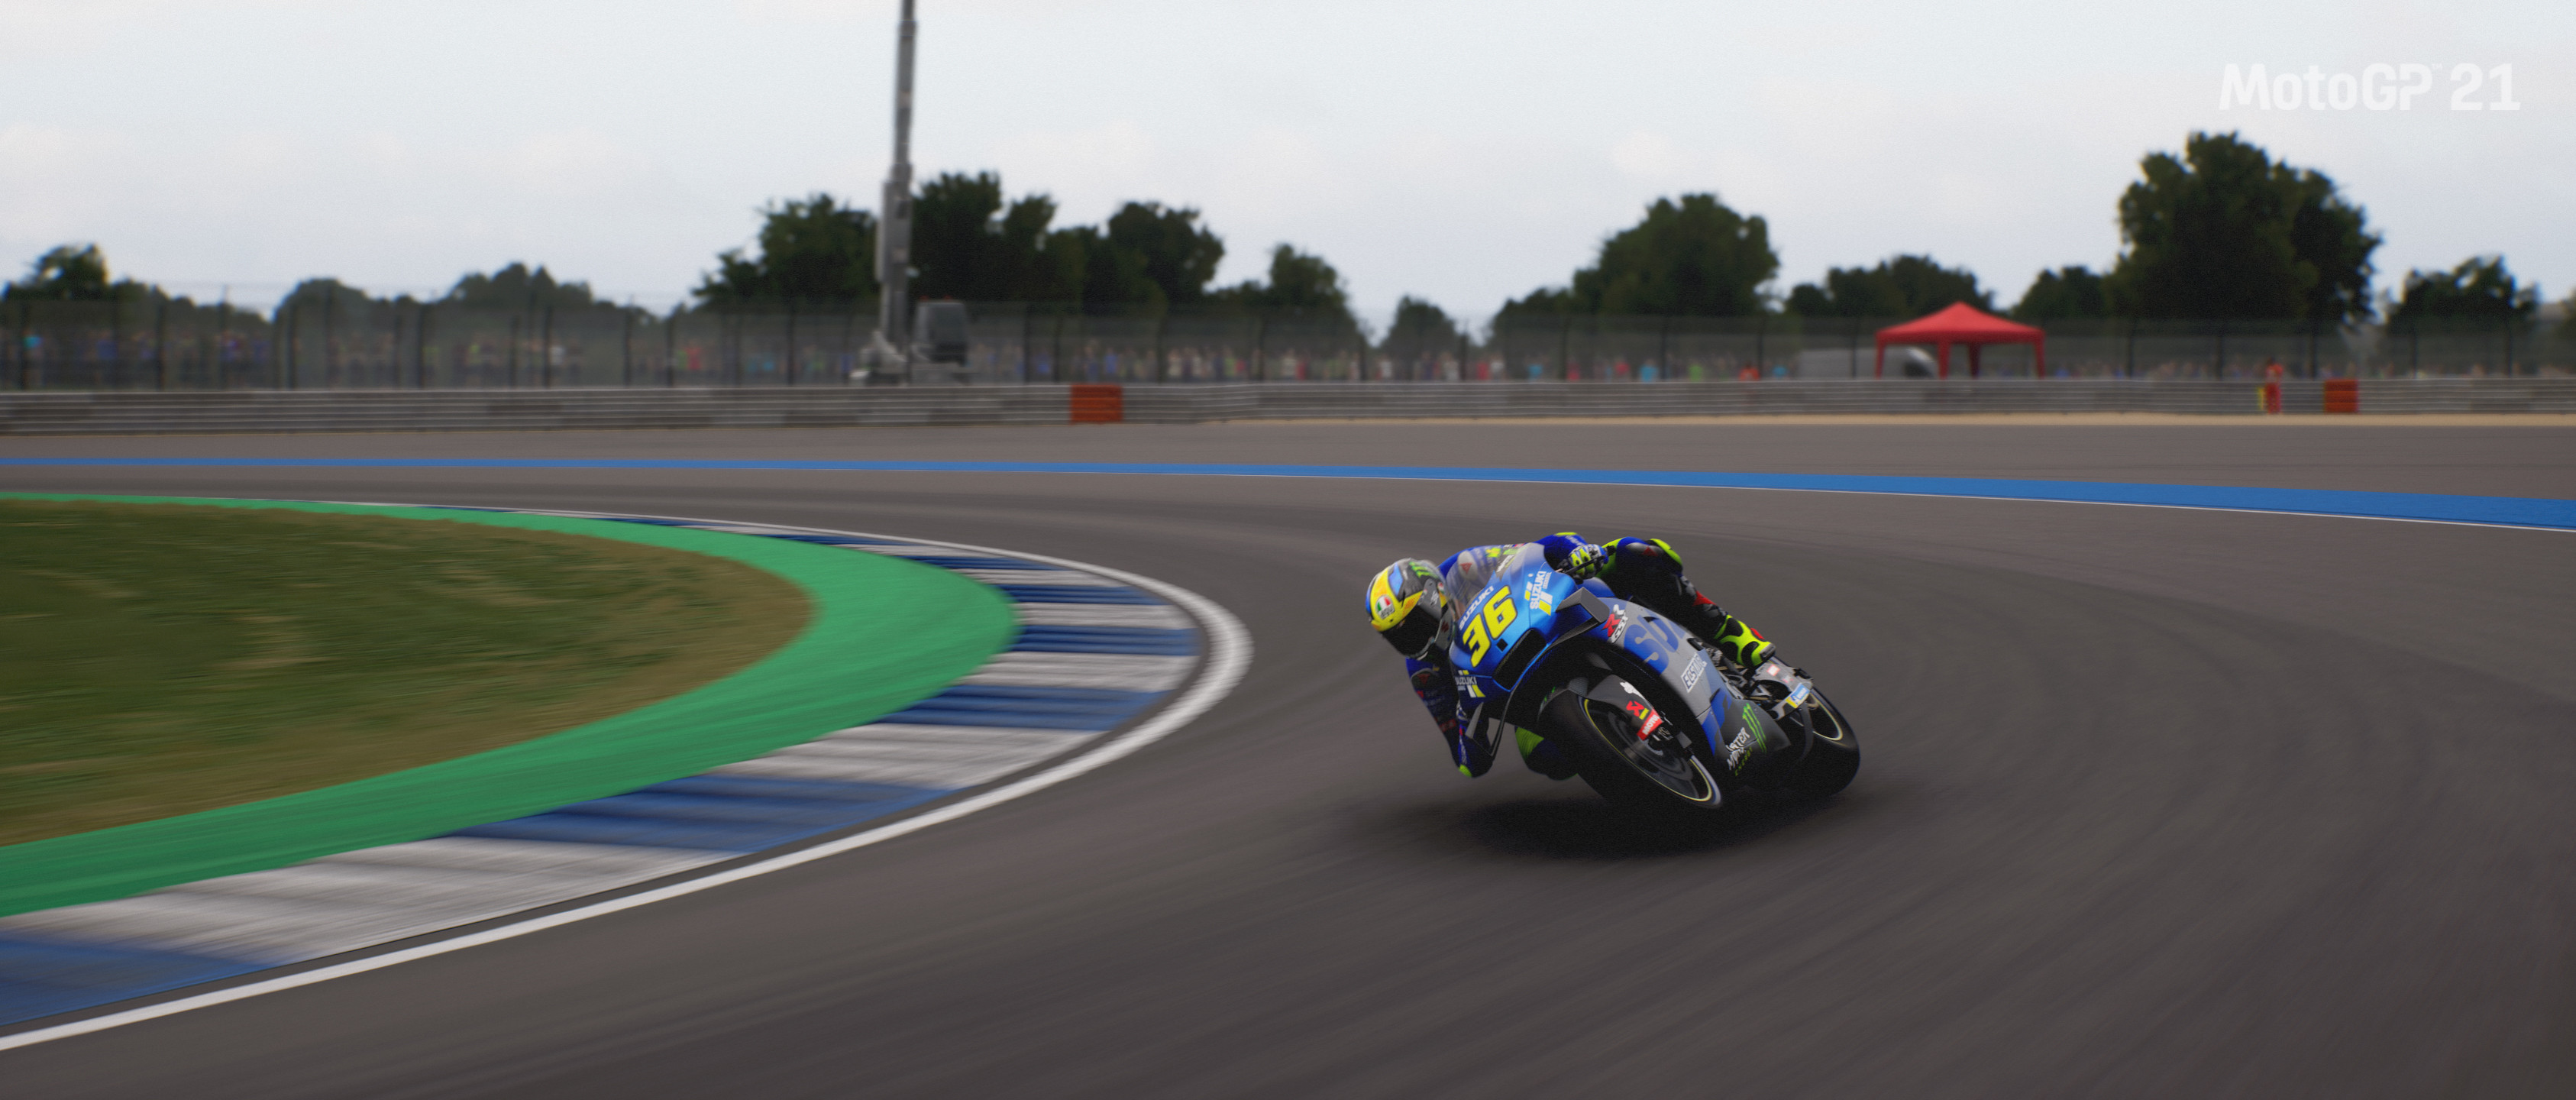 Picture of the Suzuki GSX-RR driven by Joan Mir